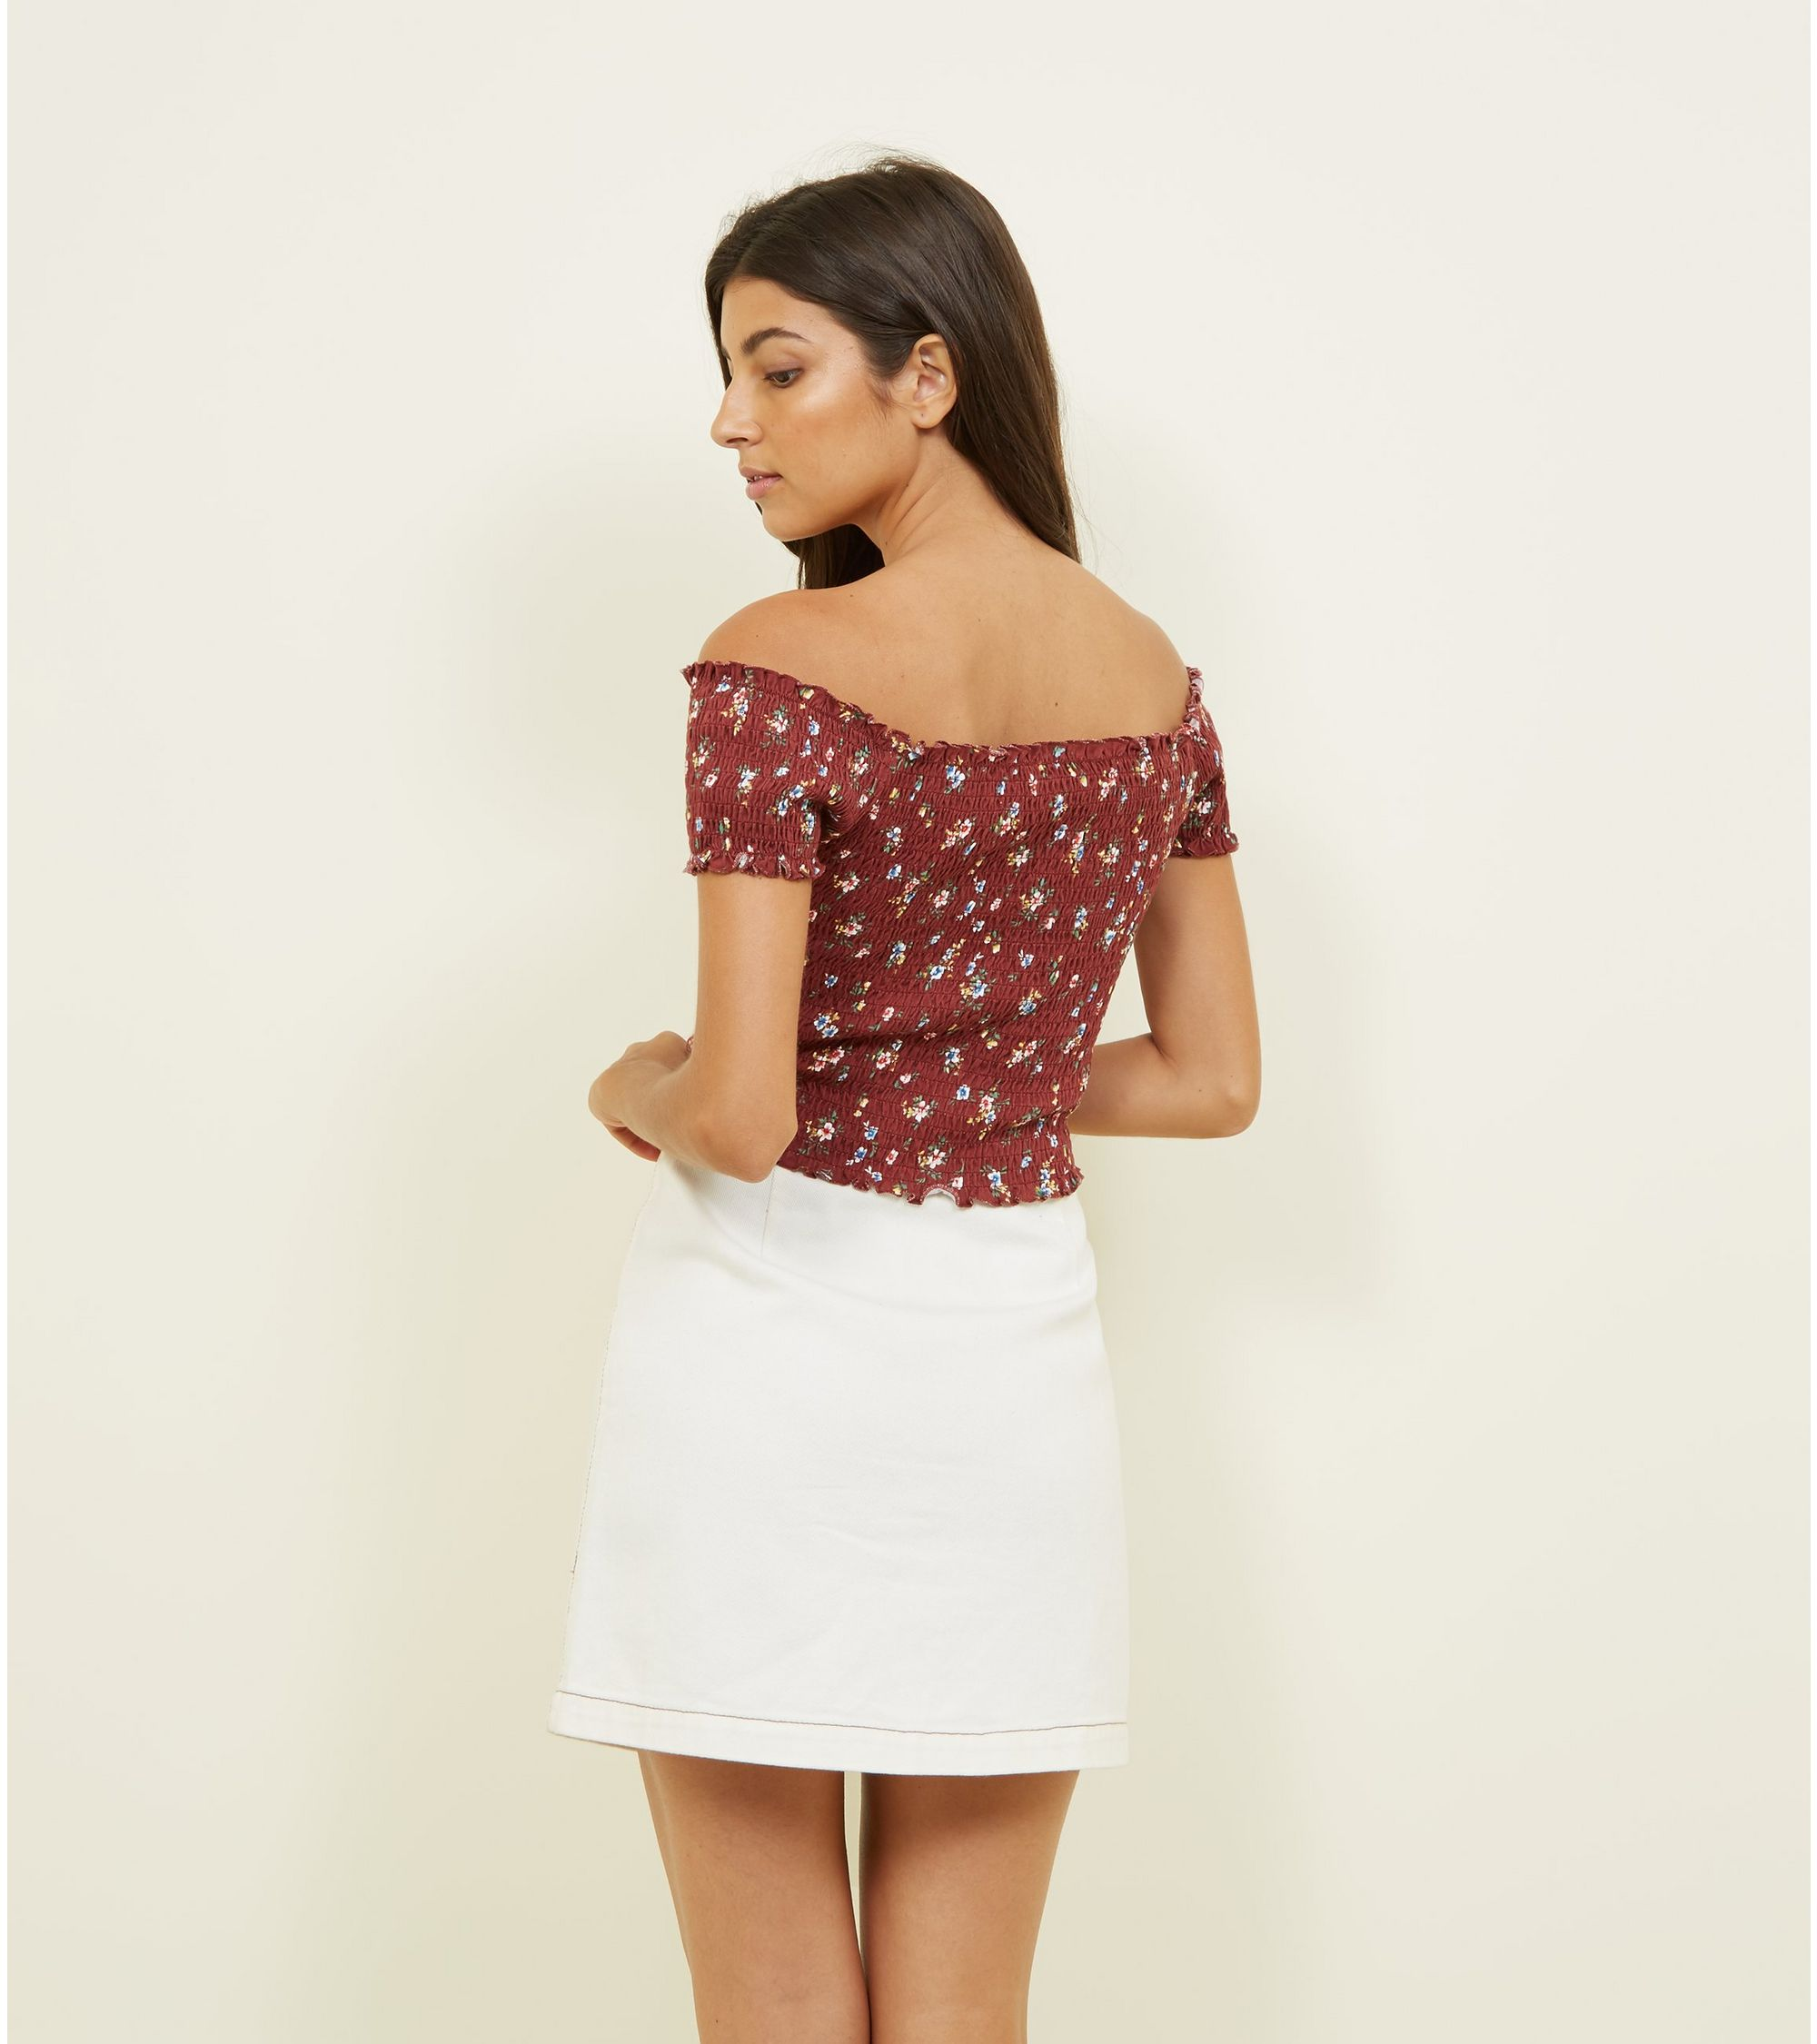 876430f3fe93c8 New Look Rust Ditsy Floral Shirred Bardot Top at £6.99 | love the brands